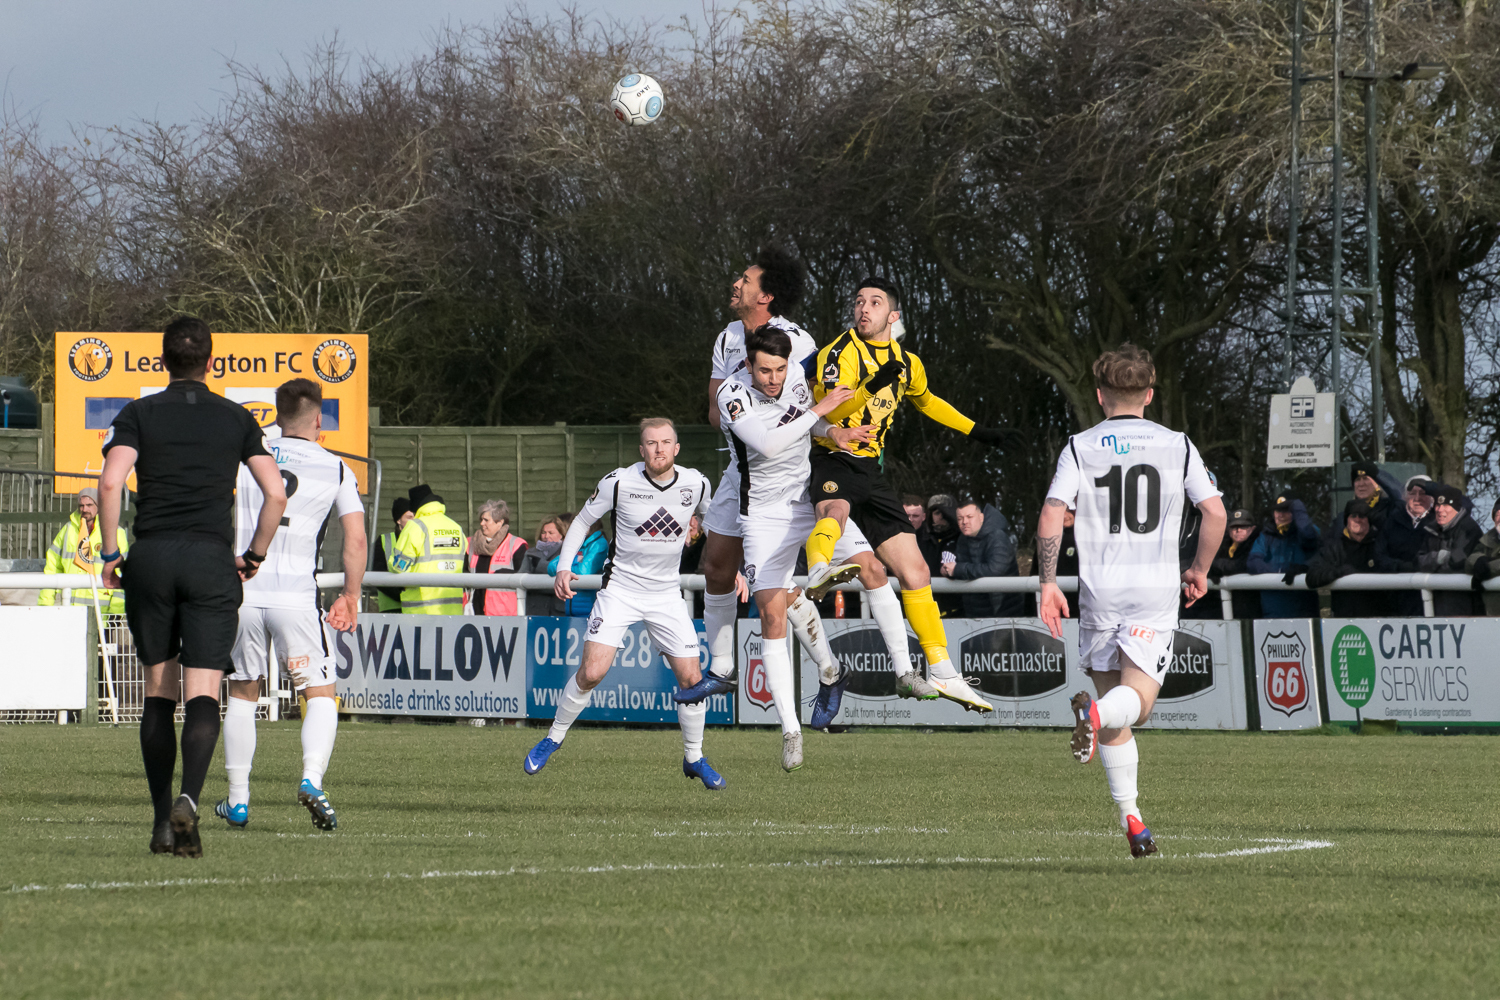 Josh Gowling rises for a header against Leamington. Picture: Andy Walkden/Hereford FC